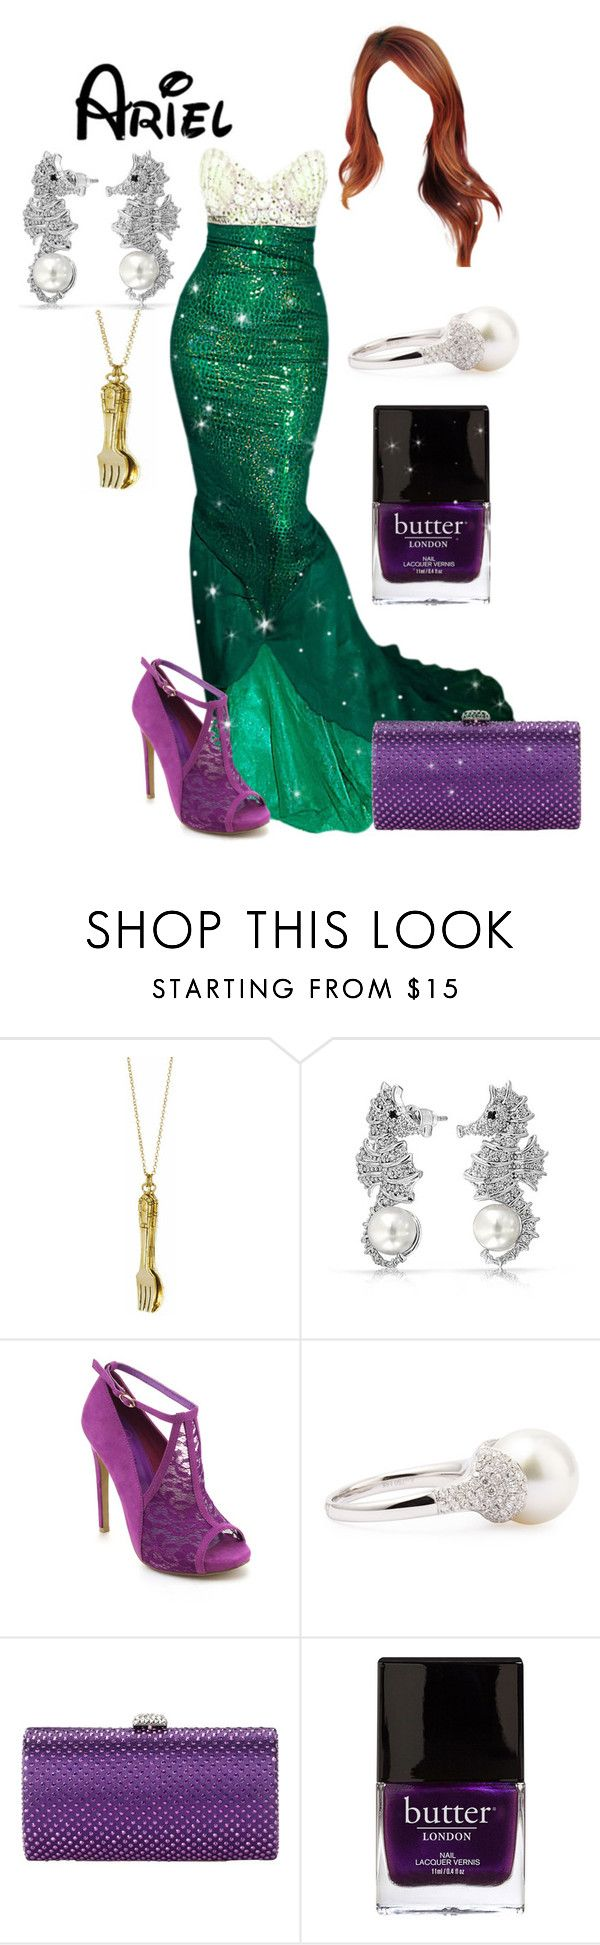 """""""Disney - Ariel"""" by briony-jae ❤ liked on Polyvore featuring Monserat De Lucca, Bling Jewelry, Eli Jewels, Magid and Butter London"""